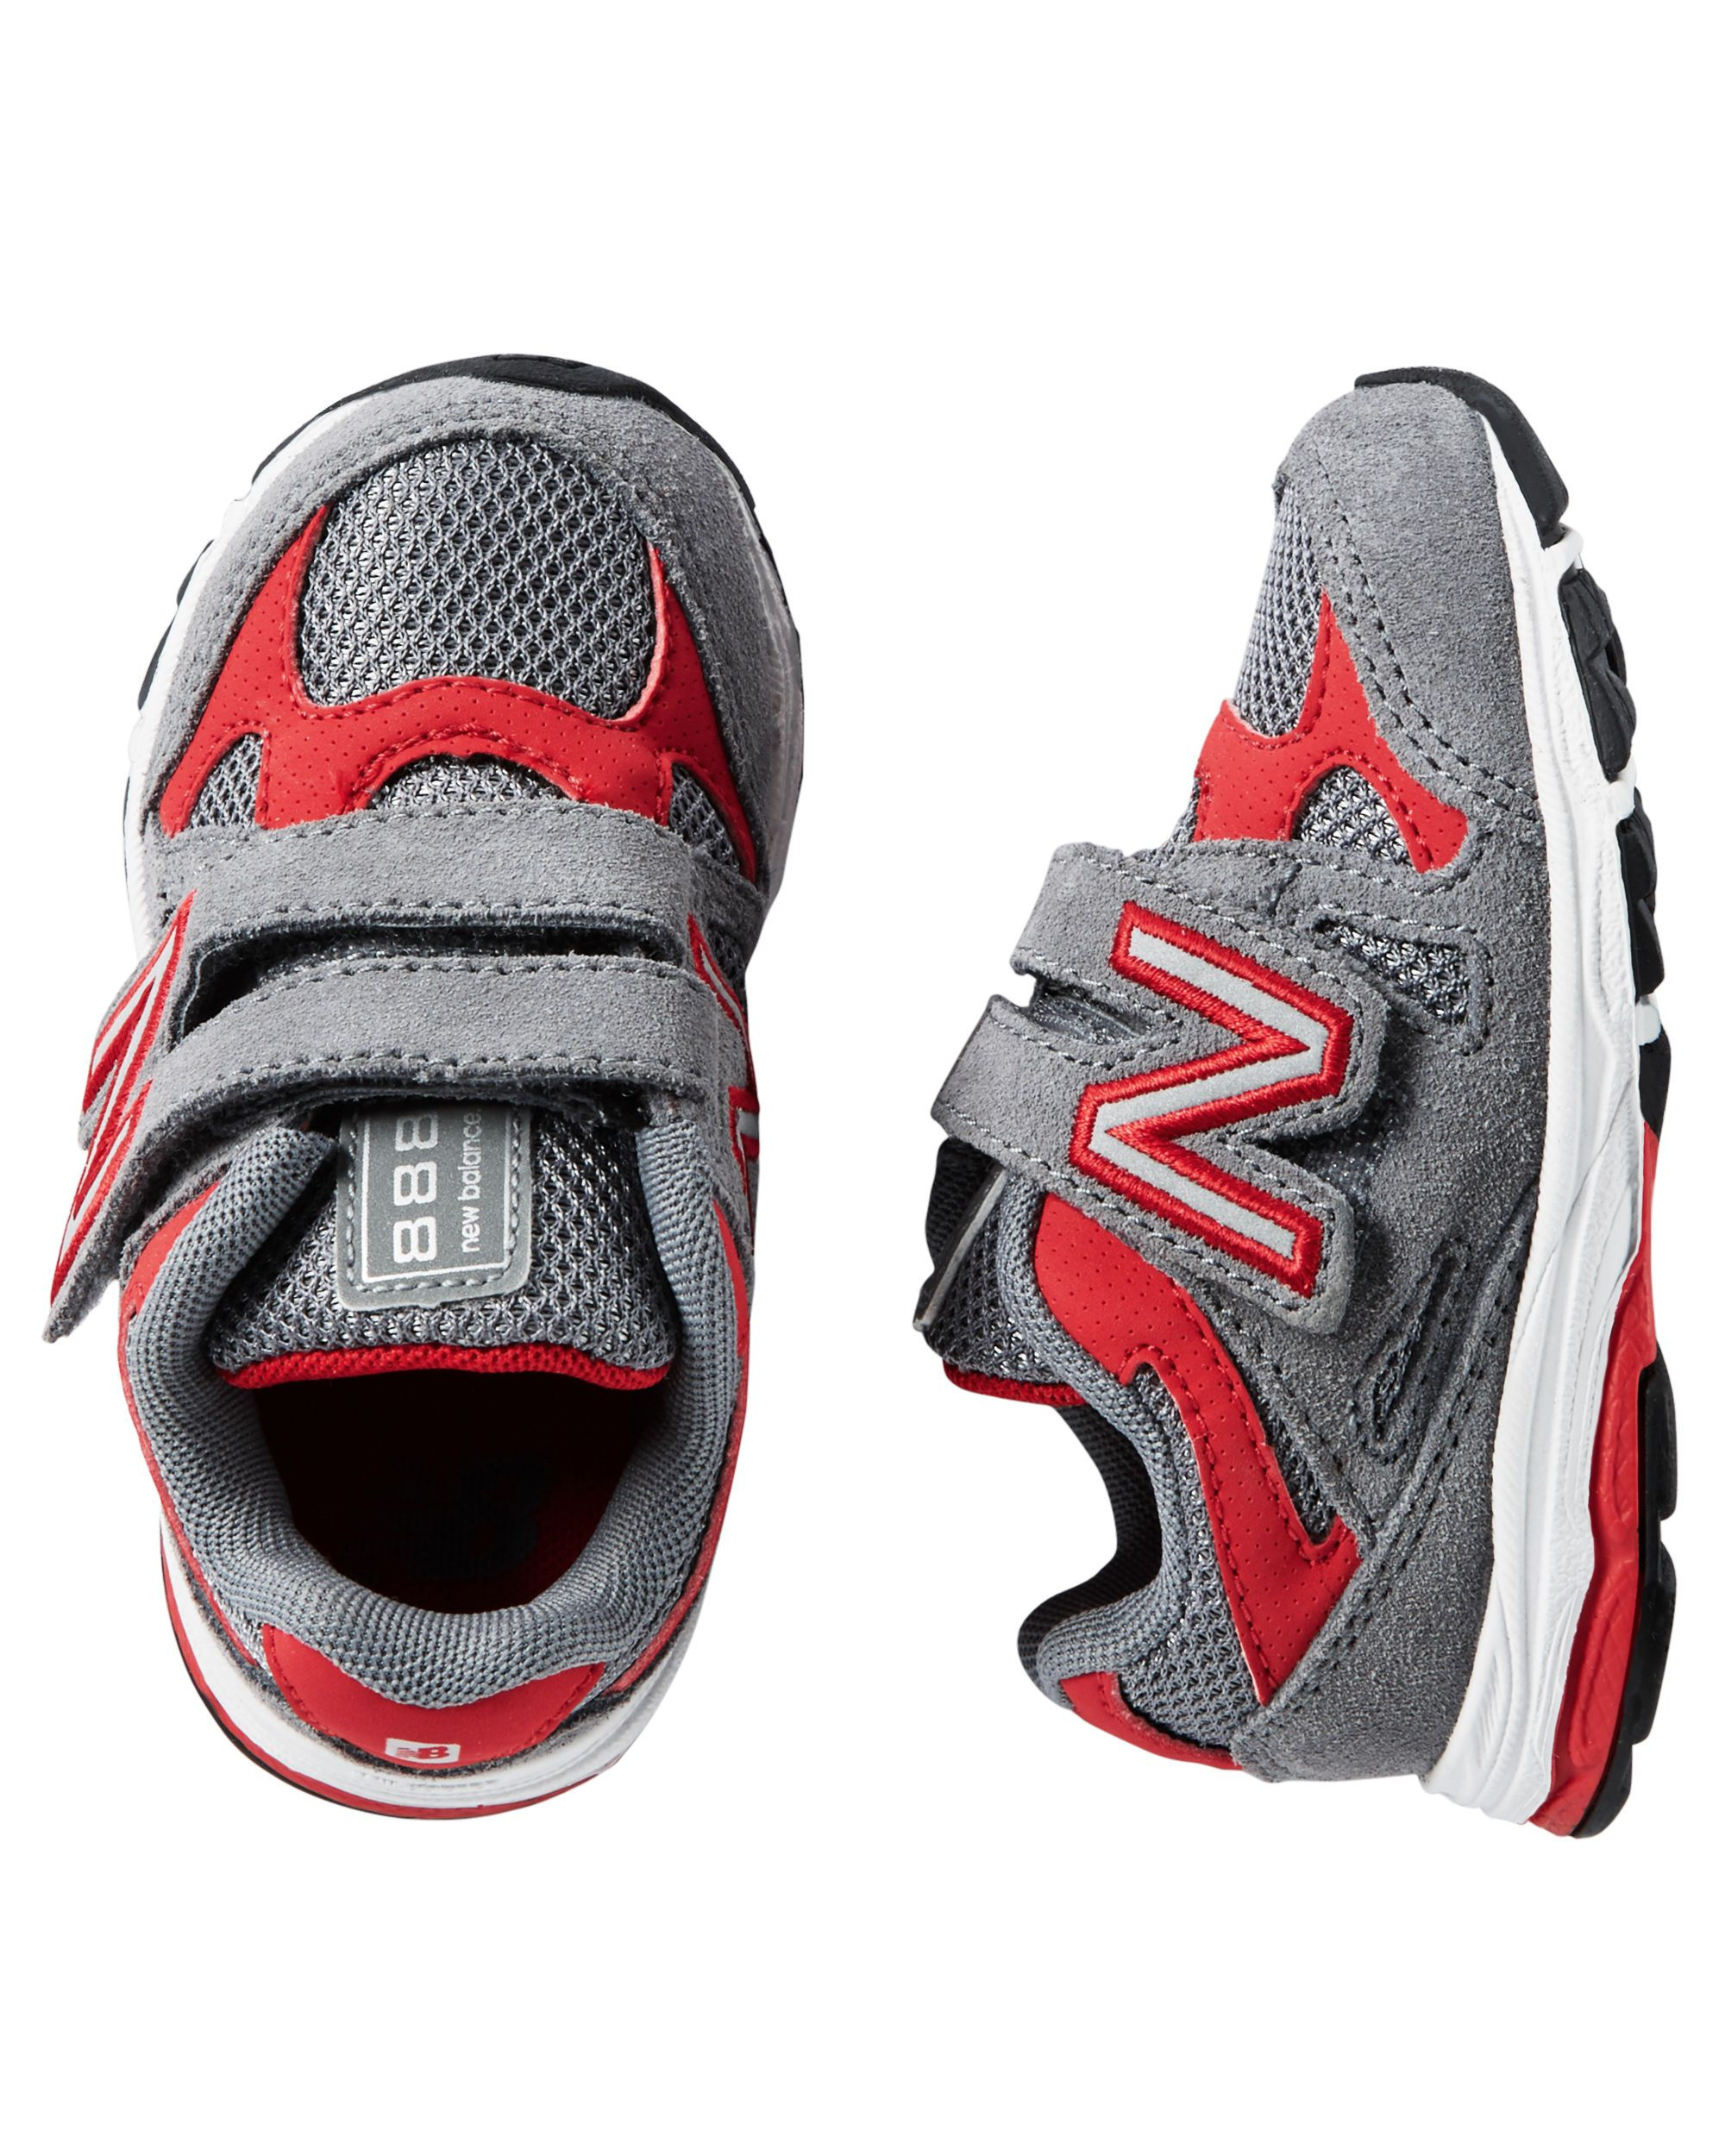 831910b698 Toddler Boy New Balance Hook   Loop 888 Sneakers